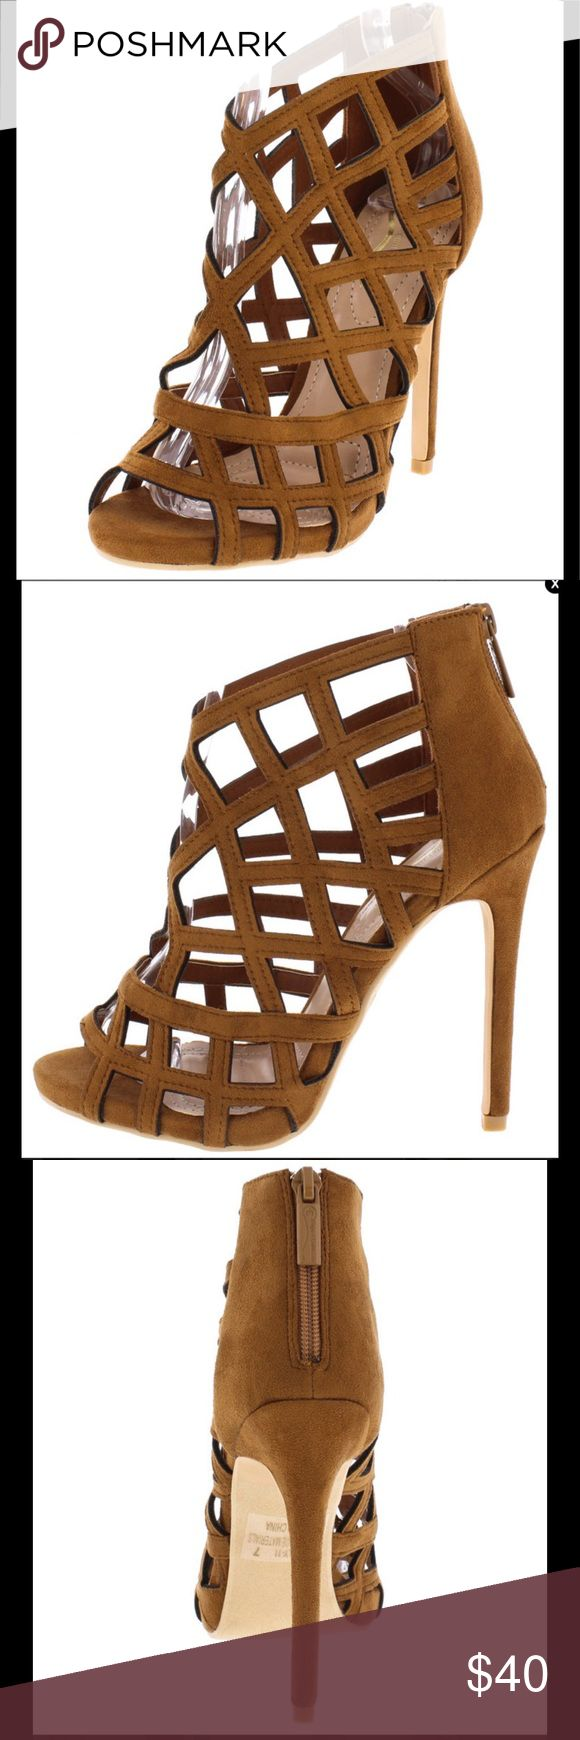 "Camel women's caged sandal Gorgeous caged sandals.  4.5"" heels. Looks great with jeans & just about everything.  Available in camel.  Vegan leather Shoes Sandals"